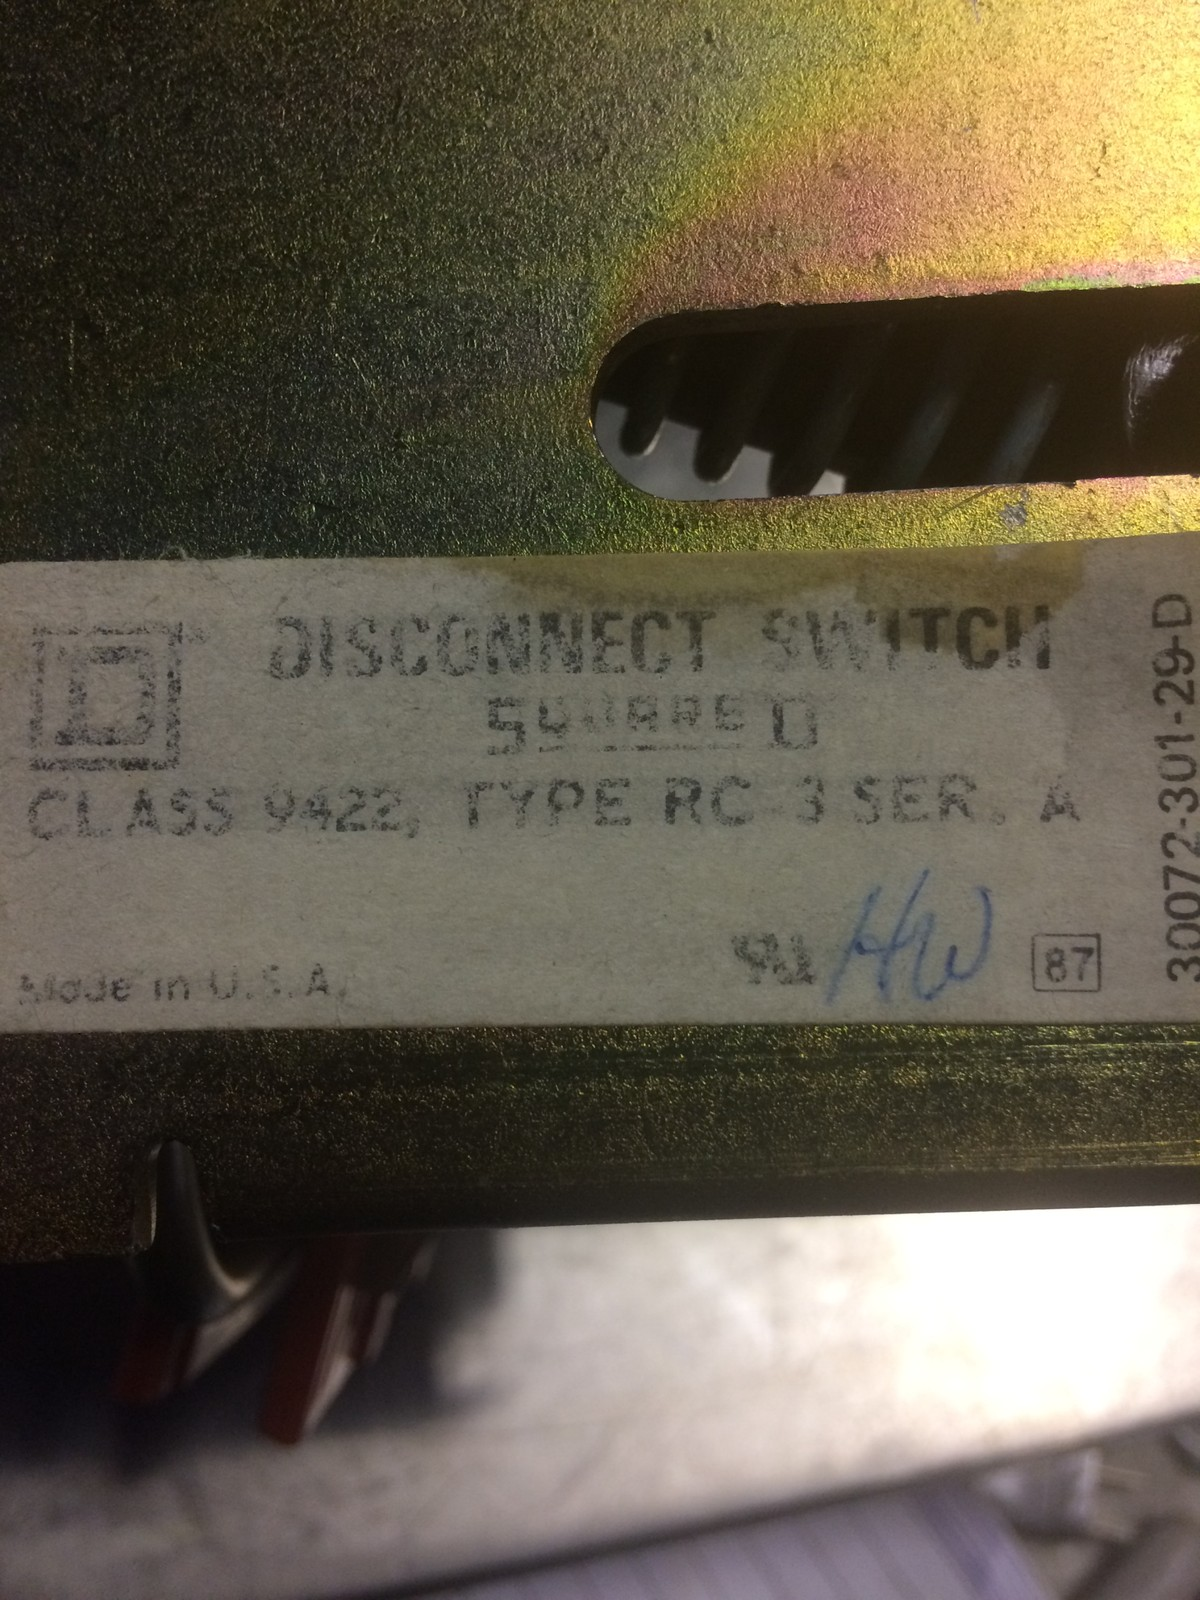 SQUARE D DISCONNECT SWITCH CLASS 9422, TYPE RC-3 SER. A/FRS-R-5 FUSE